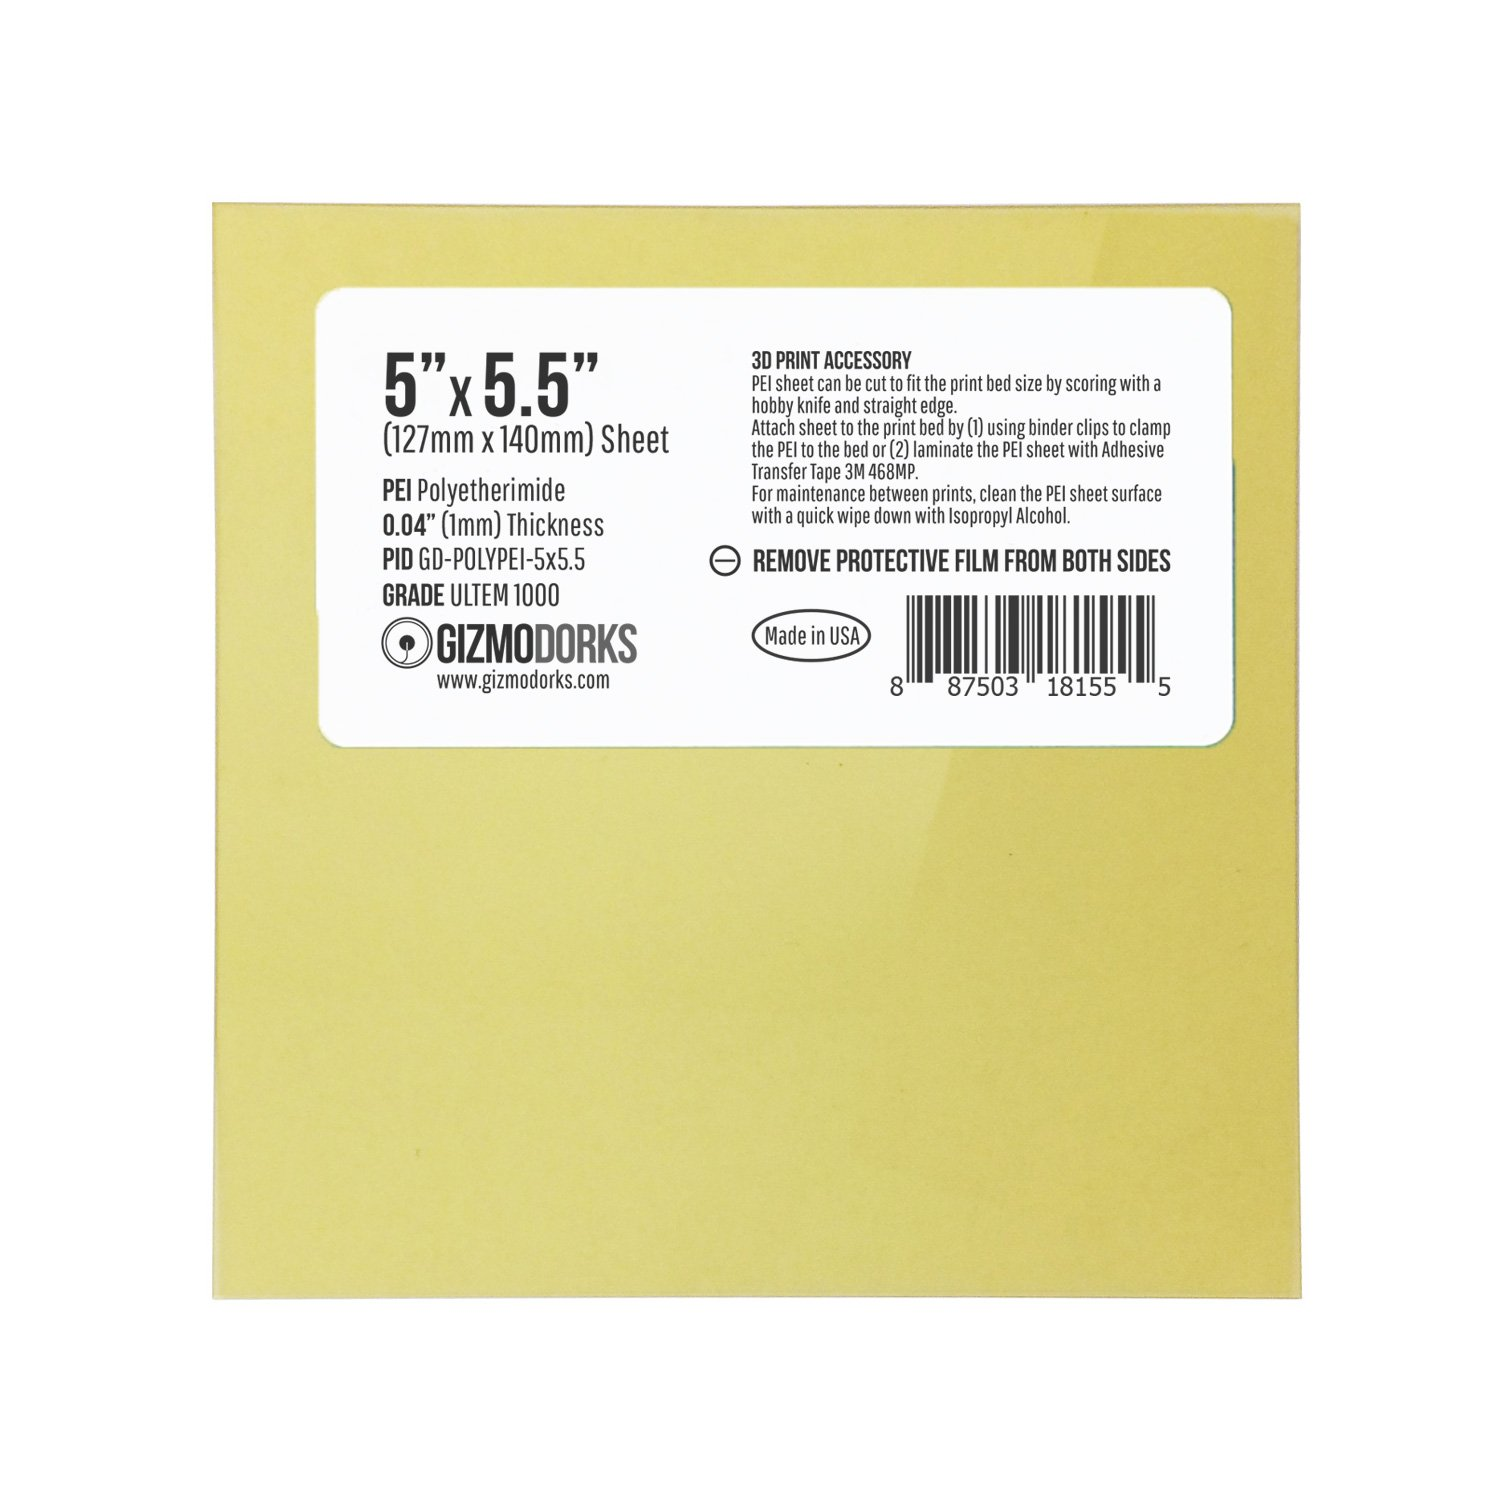 Made in The USA 1mm Thick Build Surface with 3M 468MP Adhesive for Monoprice MP Select Mini 3D Printers 127mm x 140mm Gizmo Dorks PEI Sheet 5 x 5.5